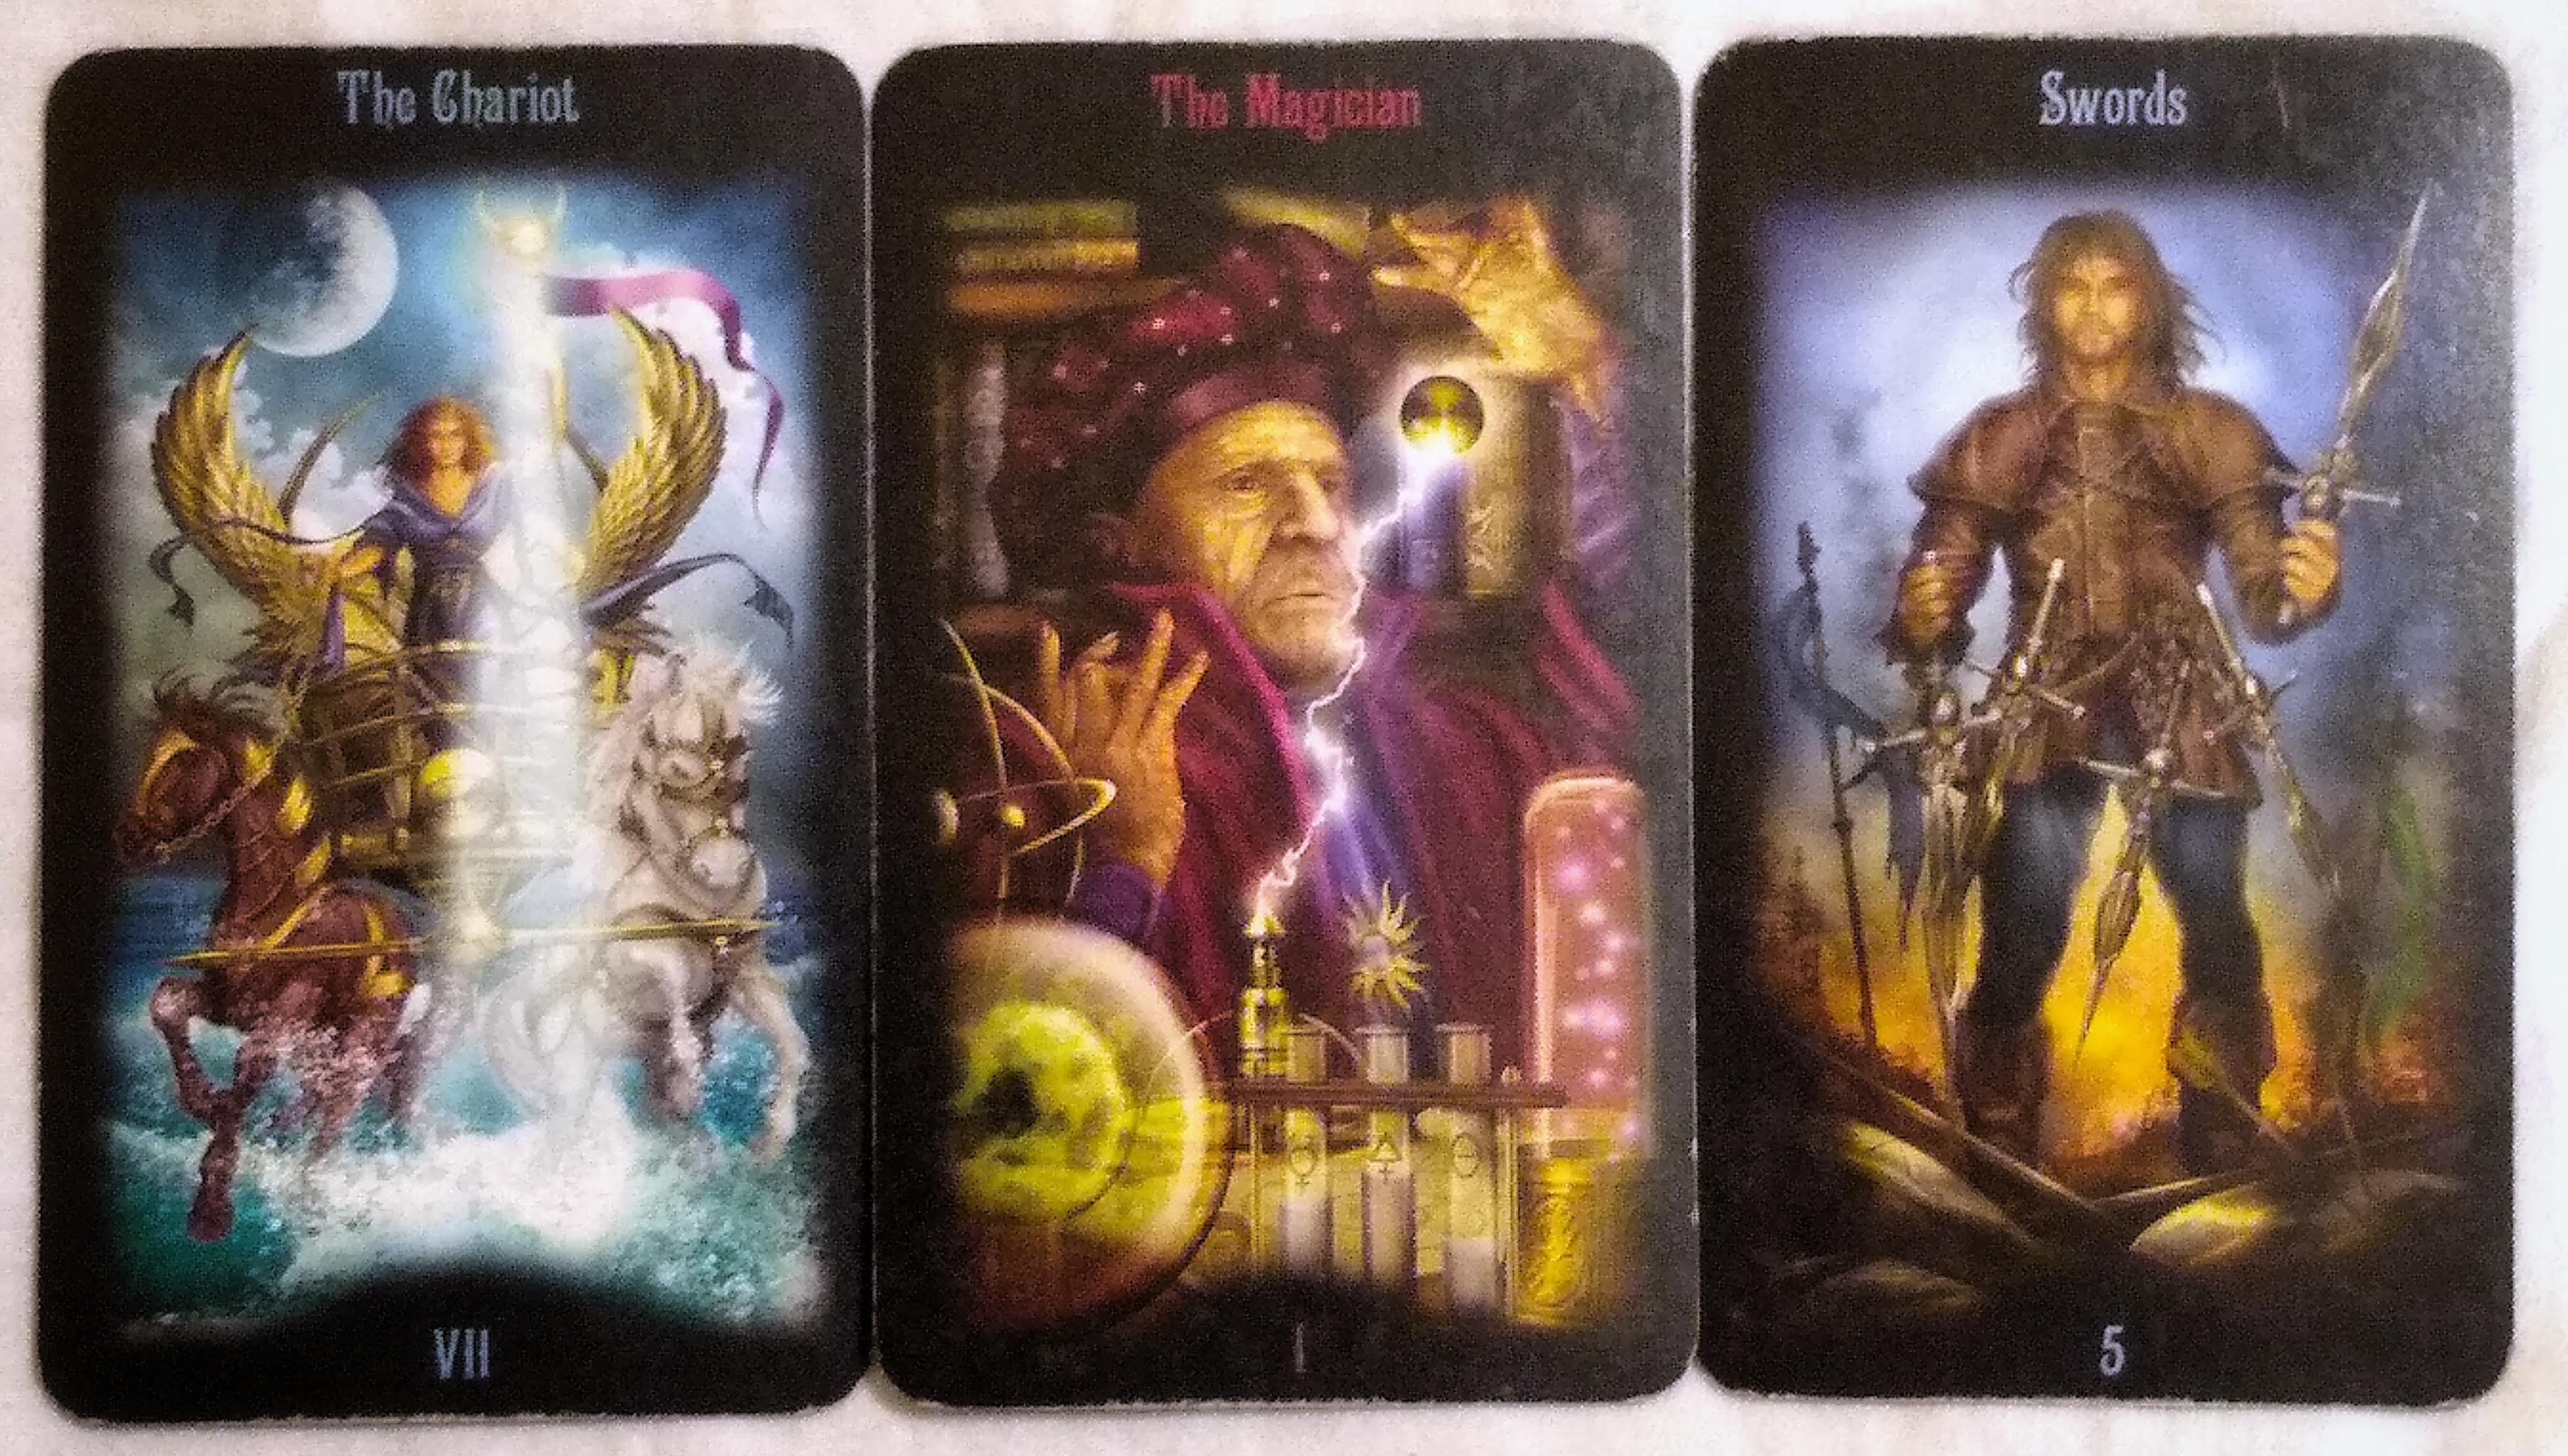 The Legacy of the Divine: The Chariot [VII], The Magician [I], & 5 of Swords.